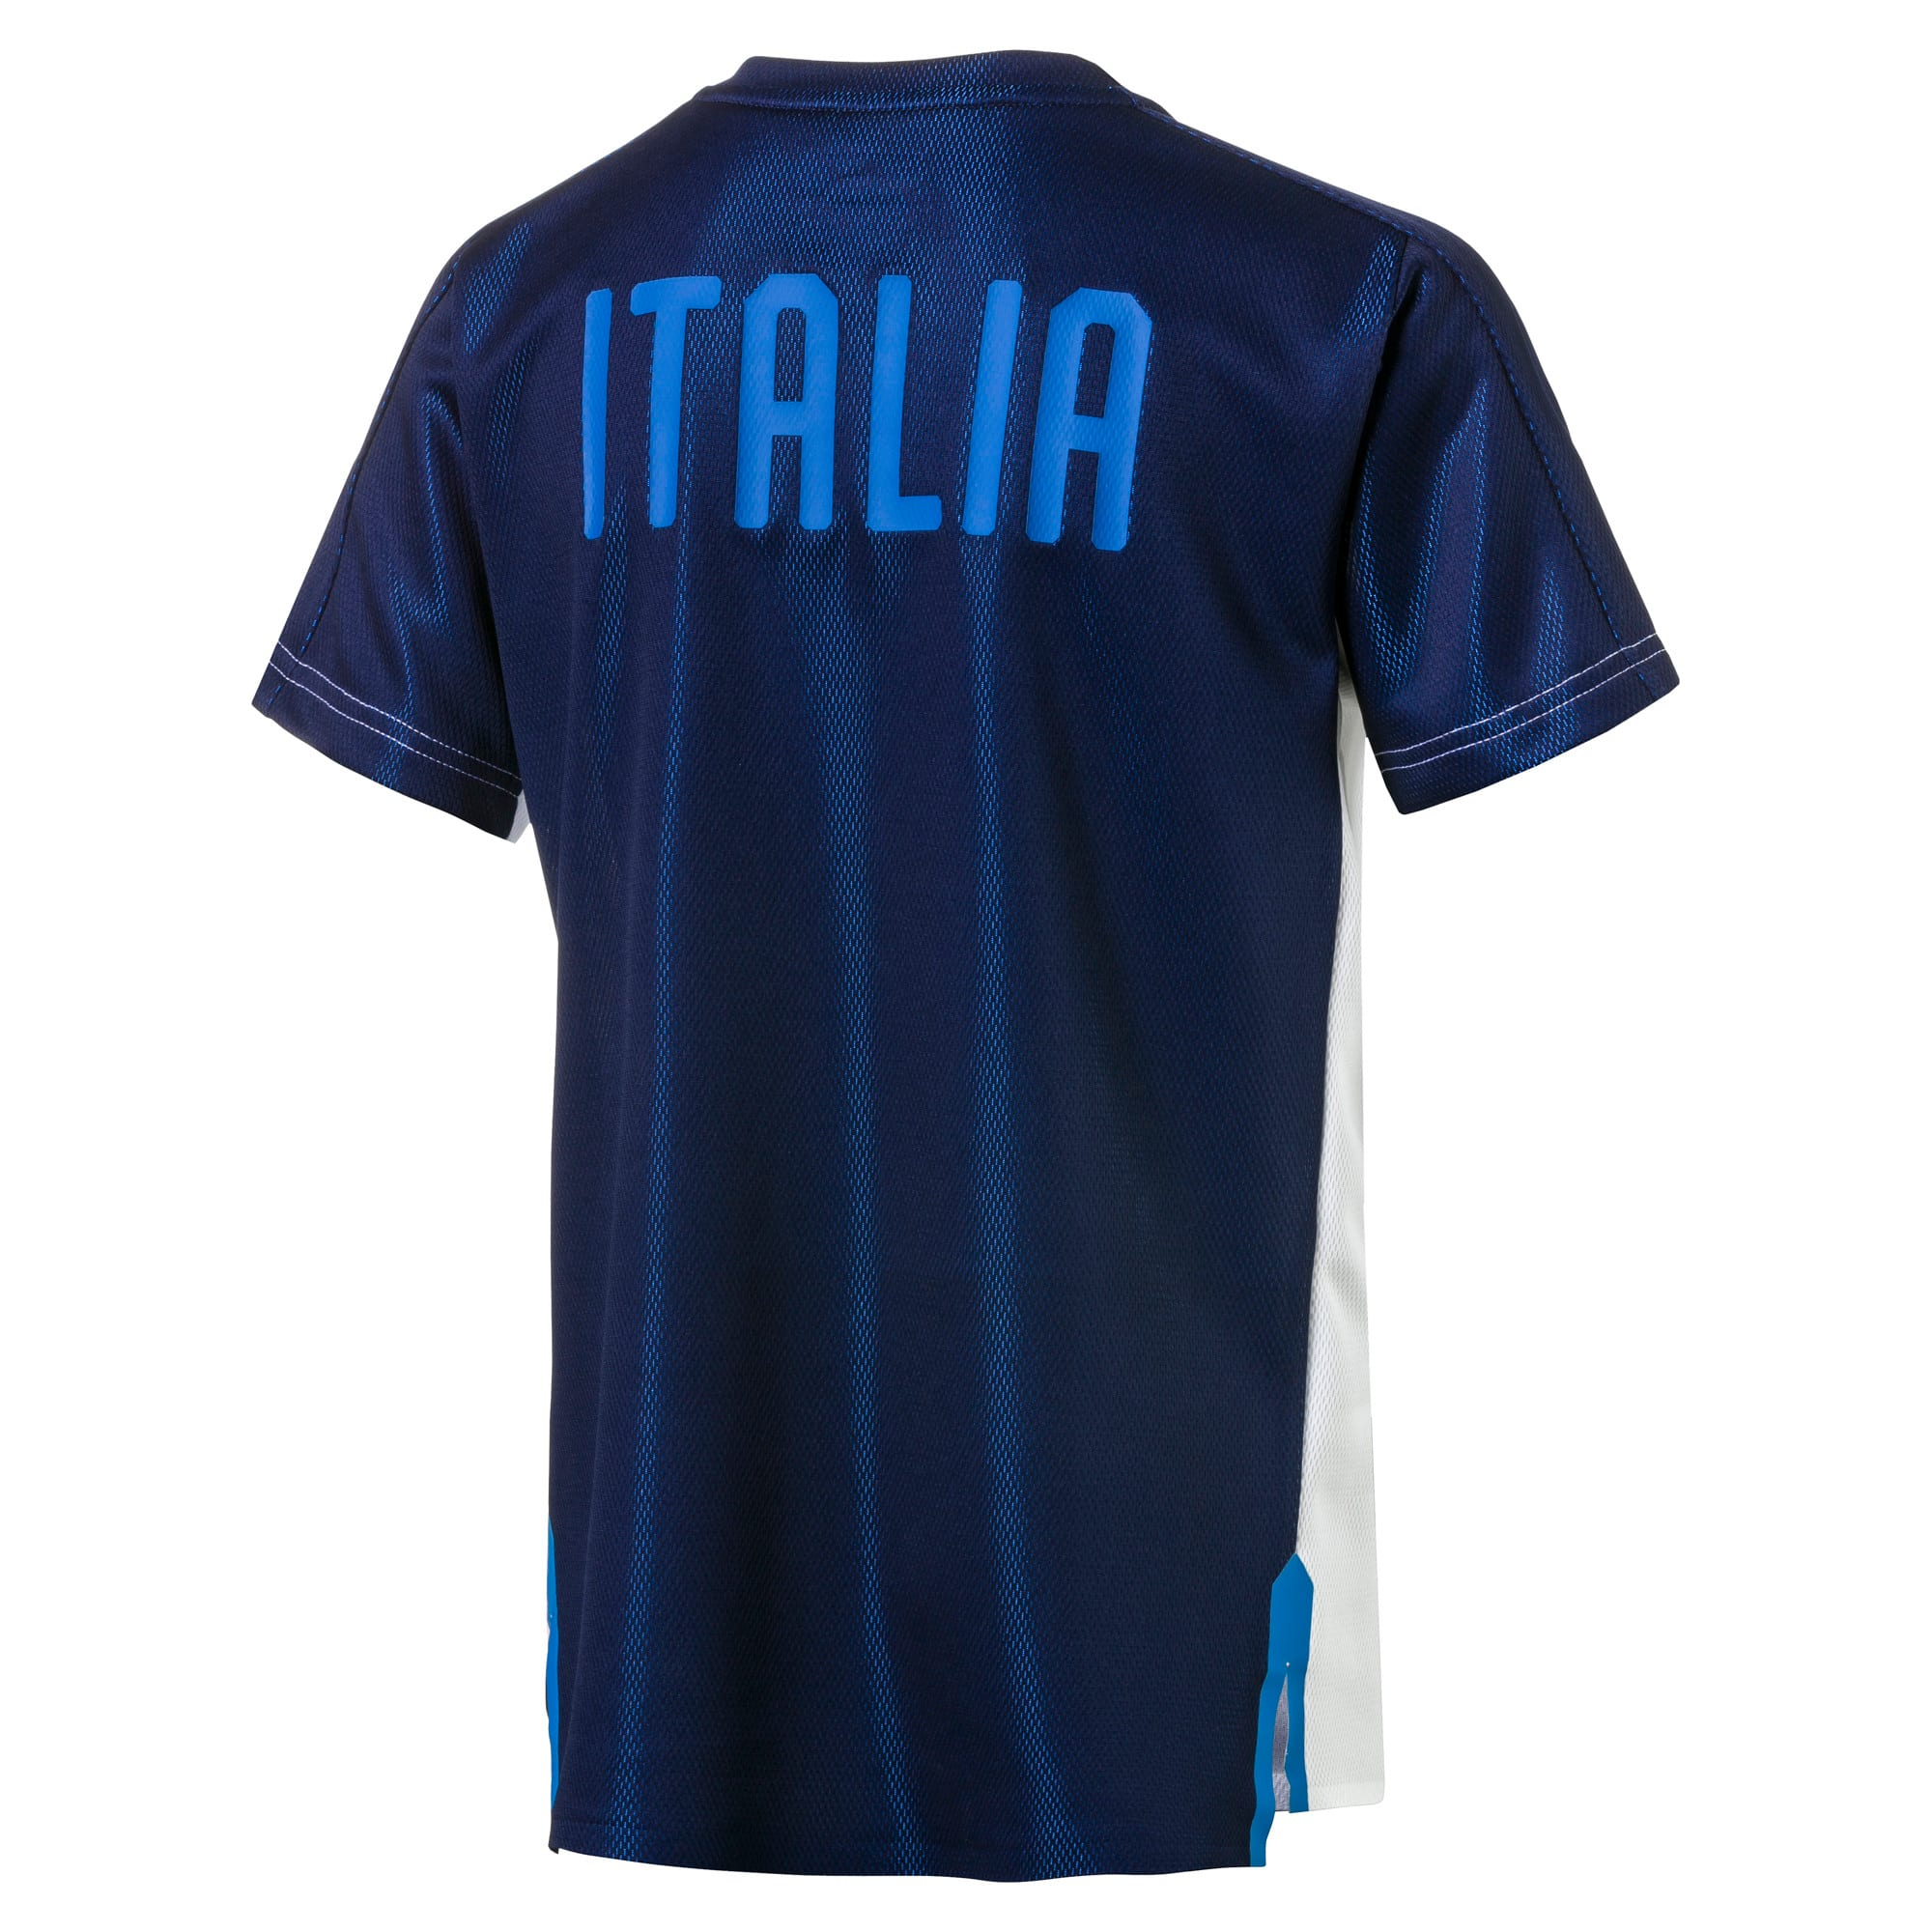 Thumbnail 2 of Italia Short Sleeve Stadium Jersey Jr, Puma White, medium